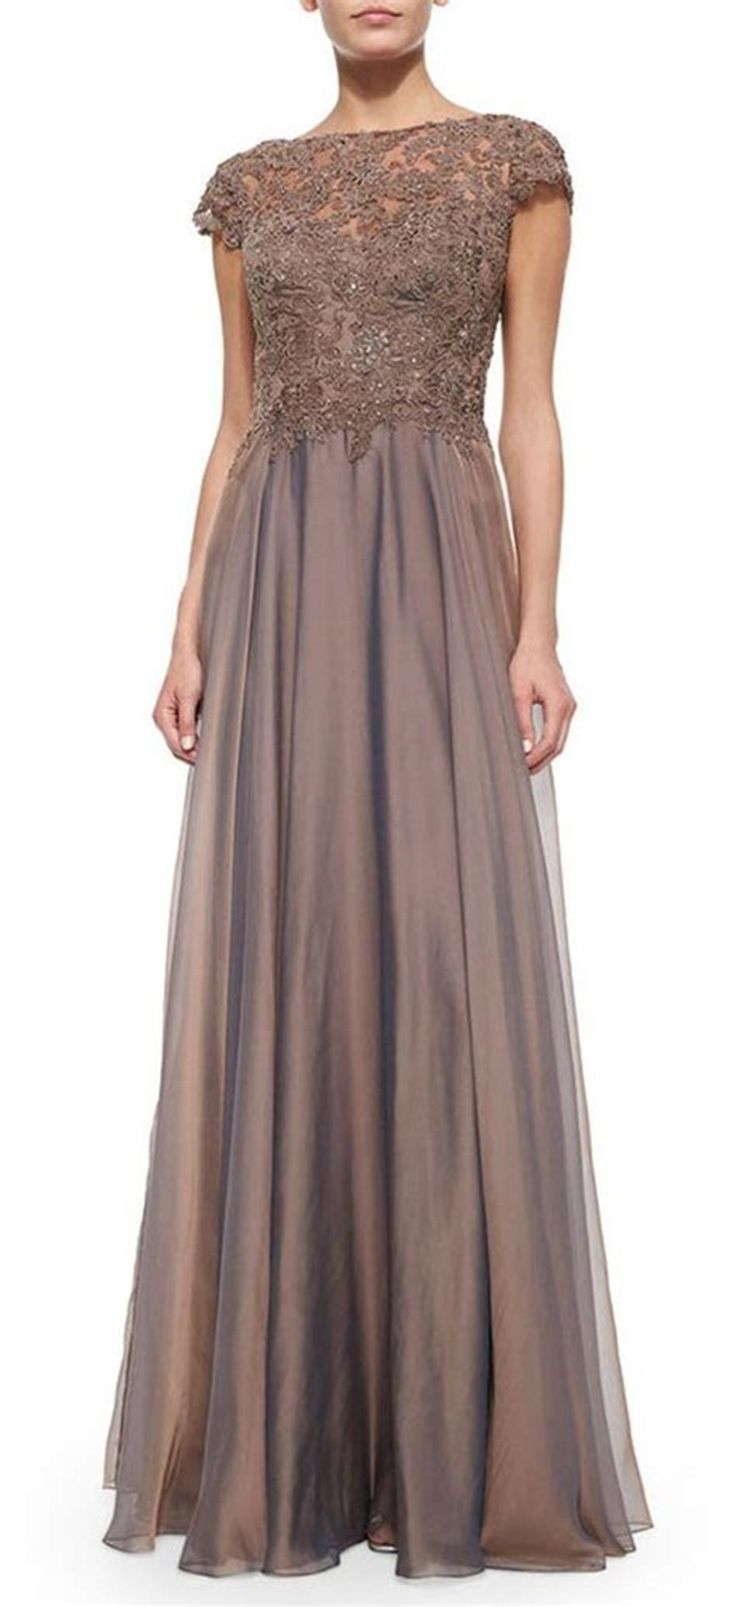 50 perfect mother of the groom dresses for spring 2019